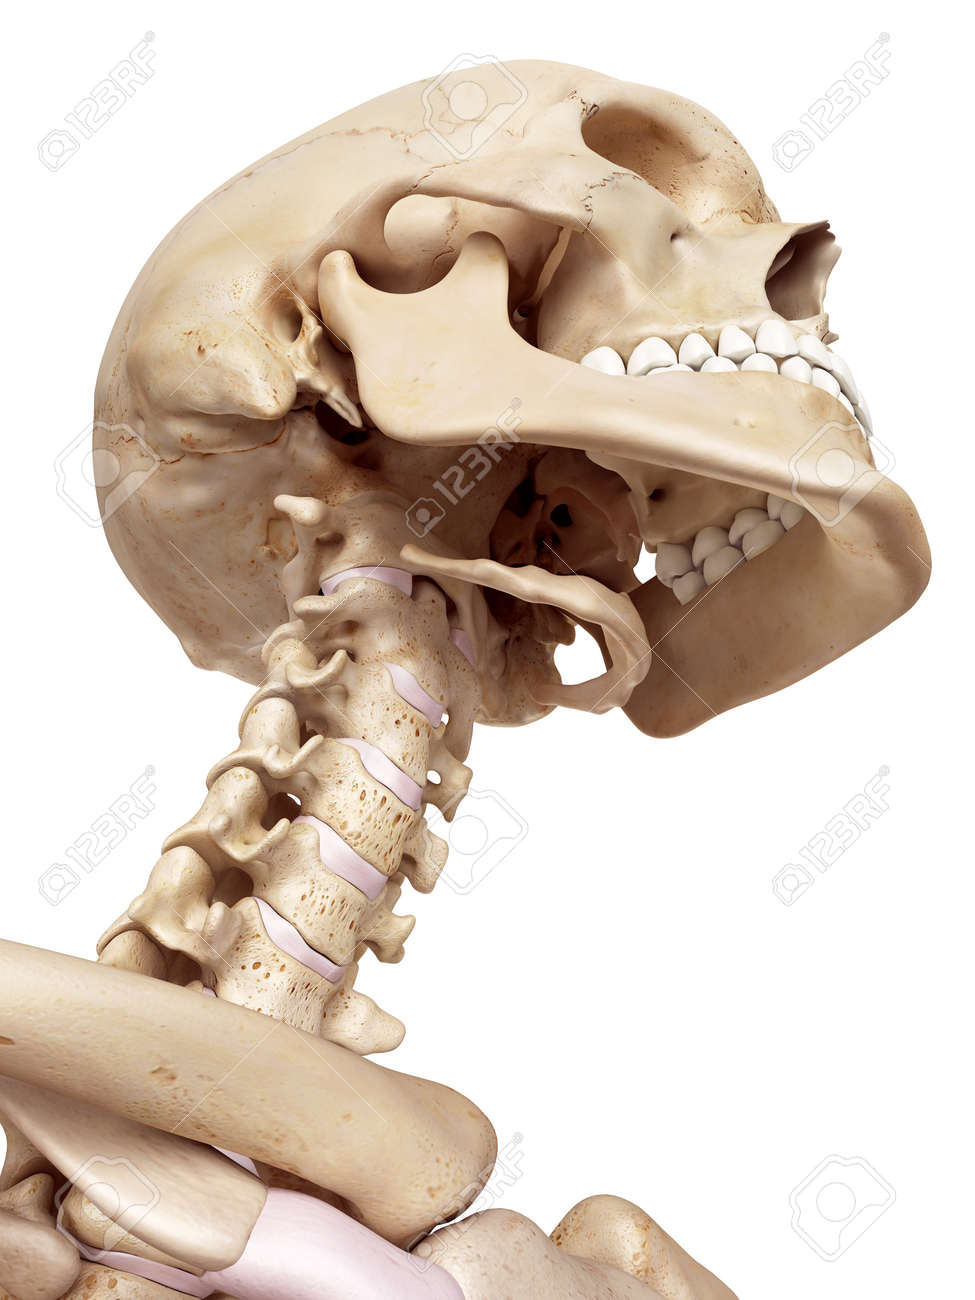 Medical Accurate Illustration Of The Human Skull And Neck Stock